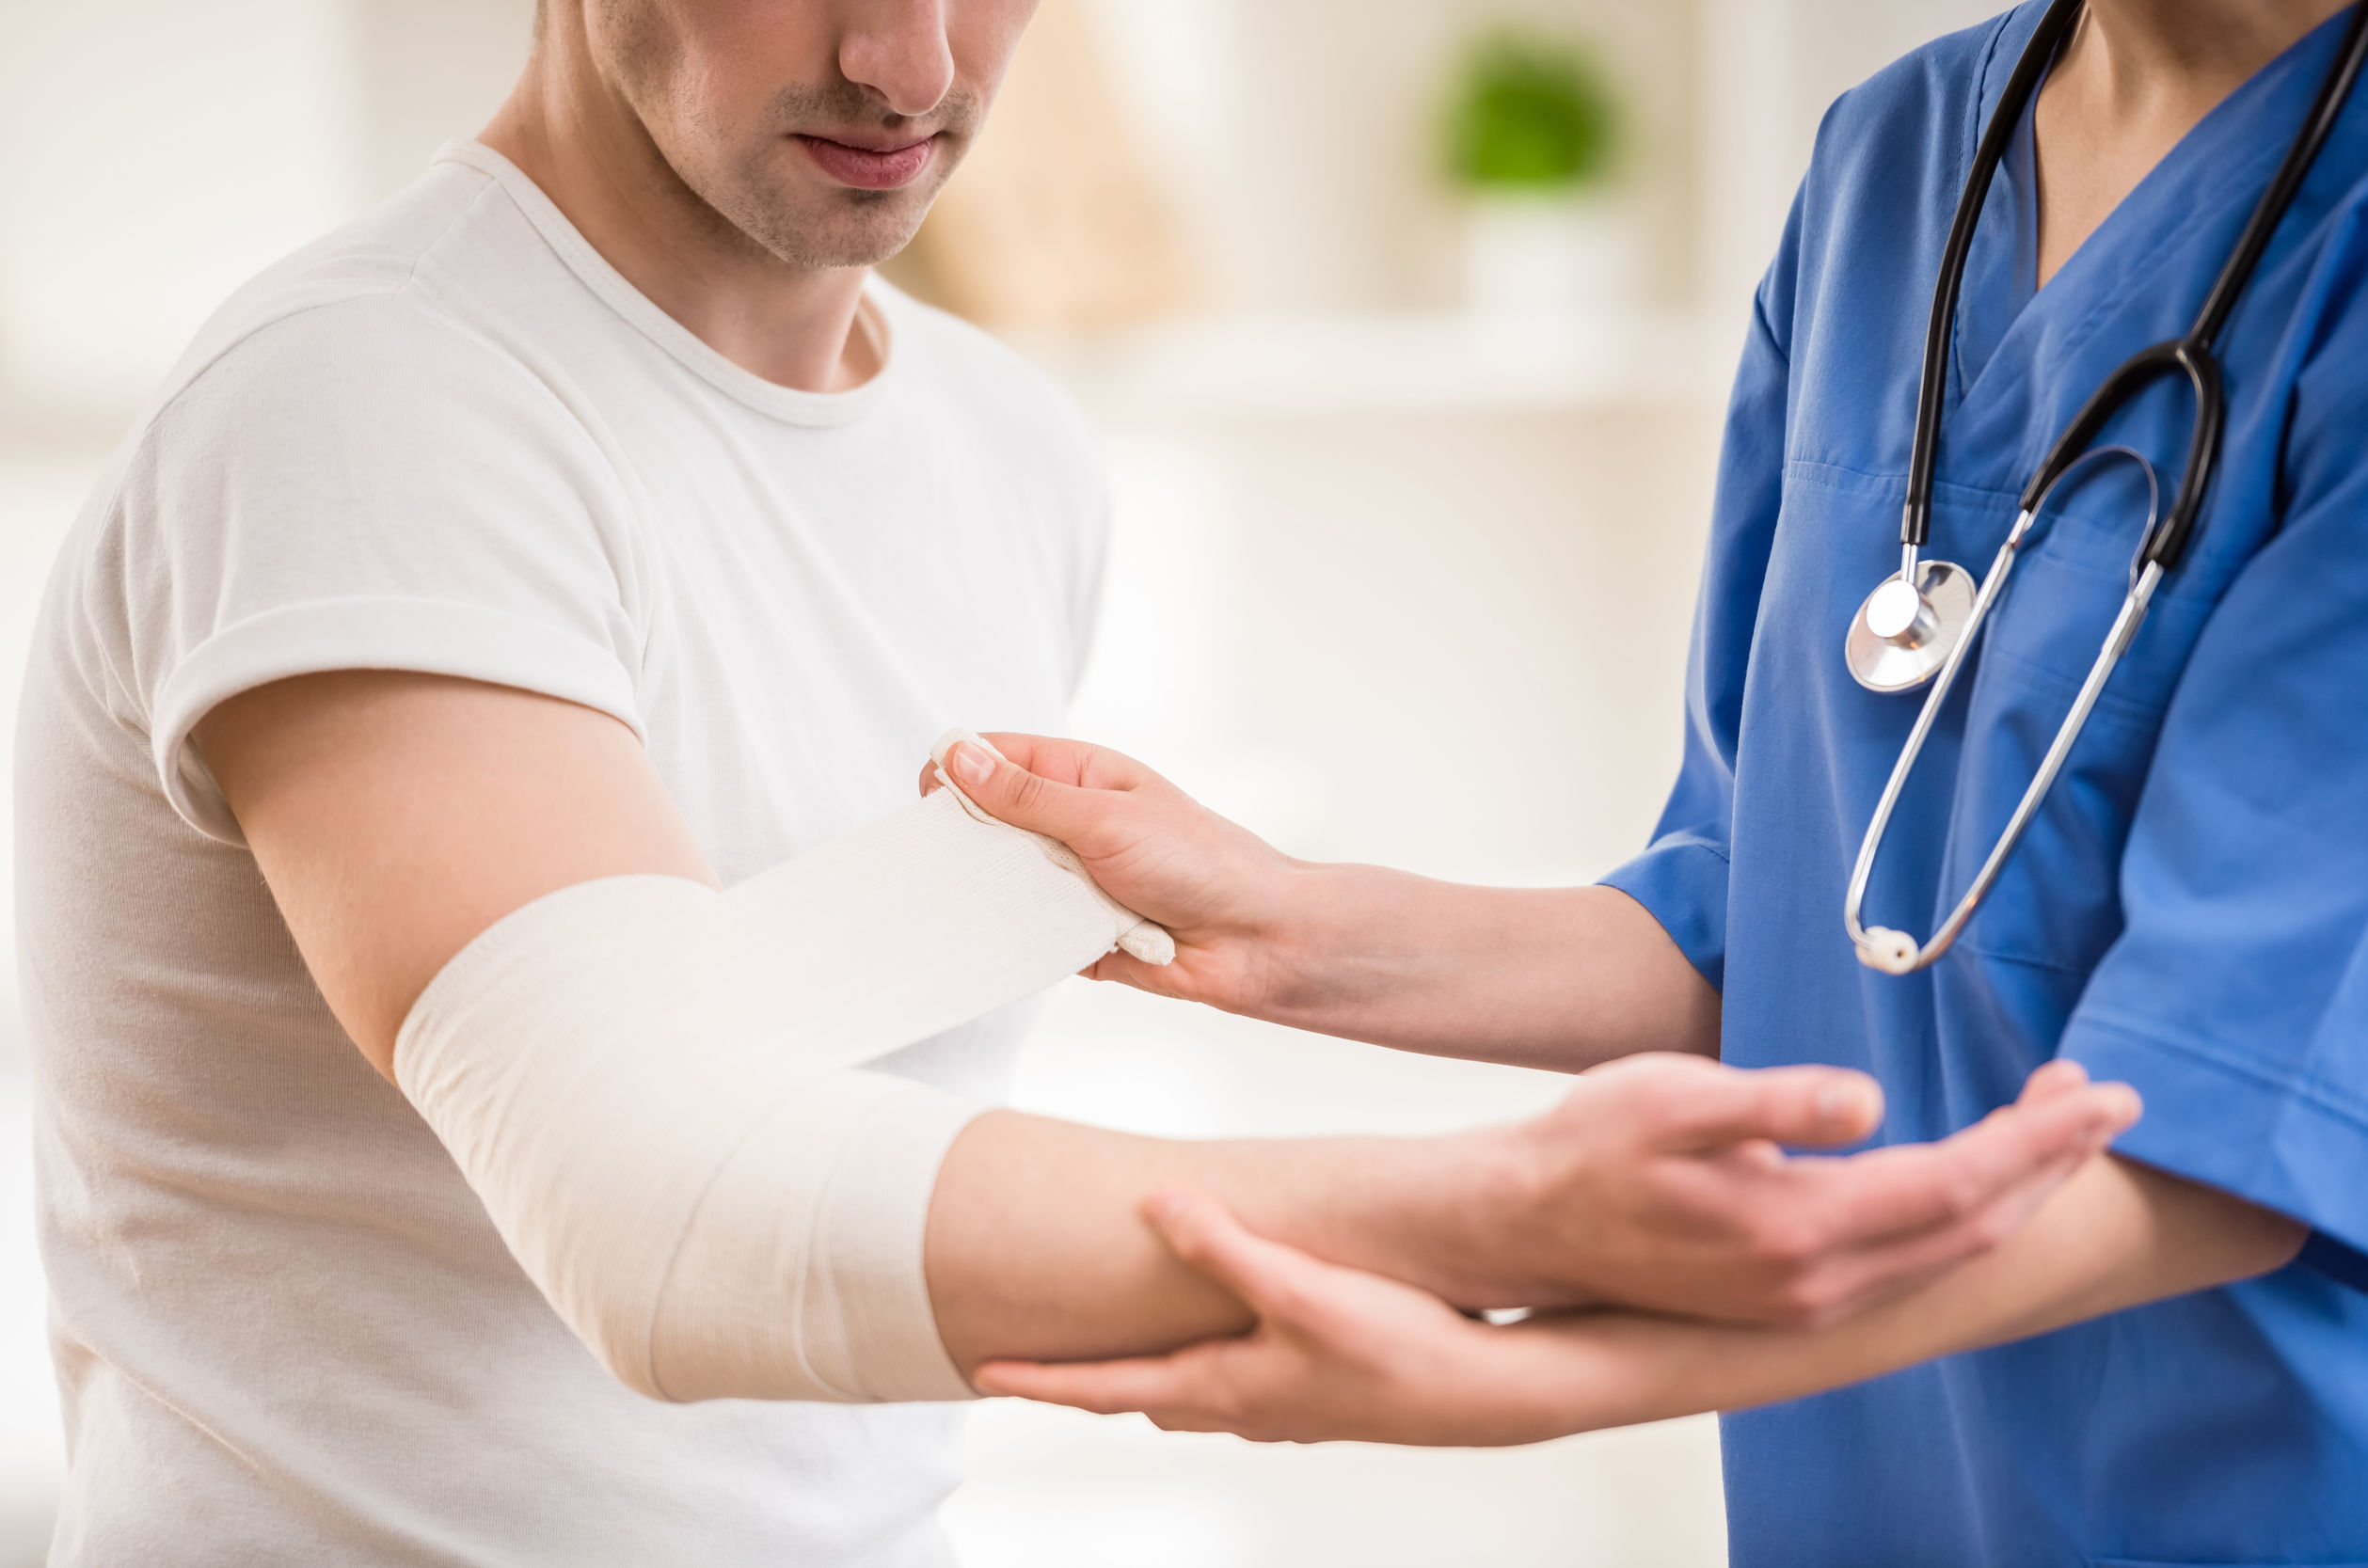 Close-up of female doctor with stethoscope  bandaging hand of male patient.